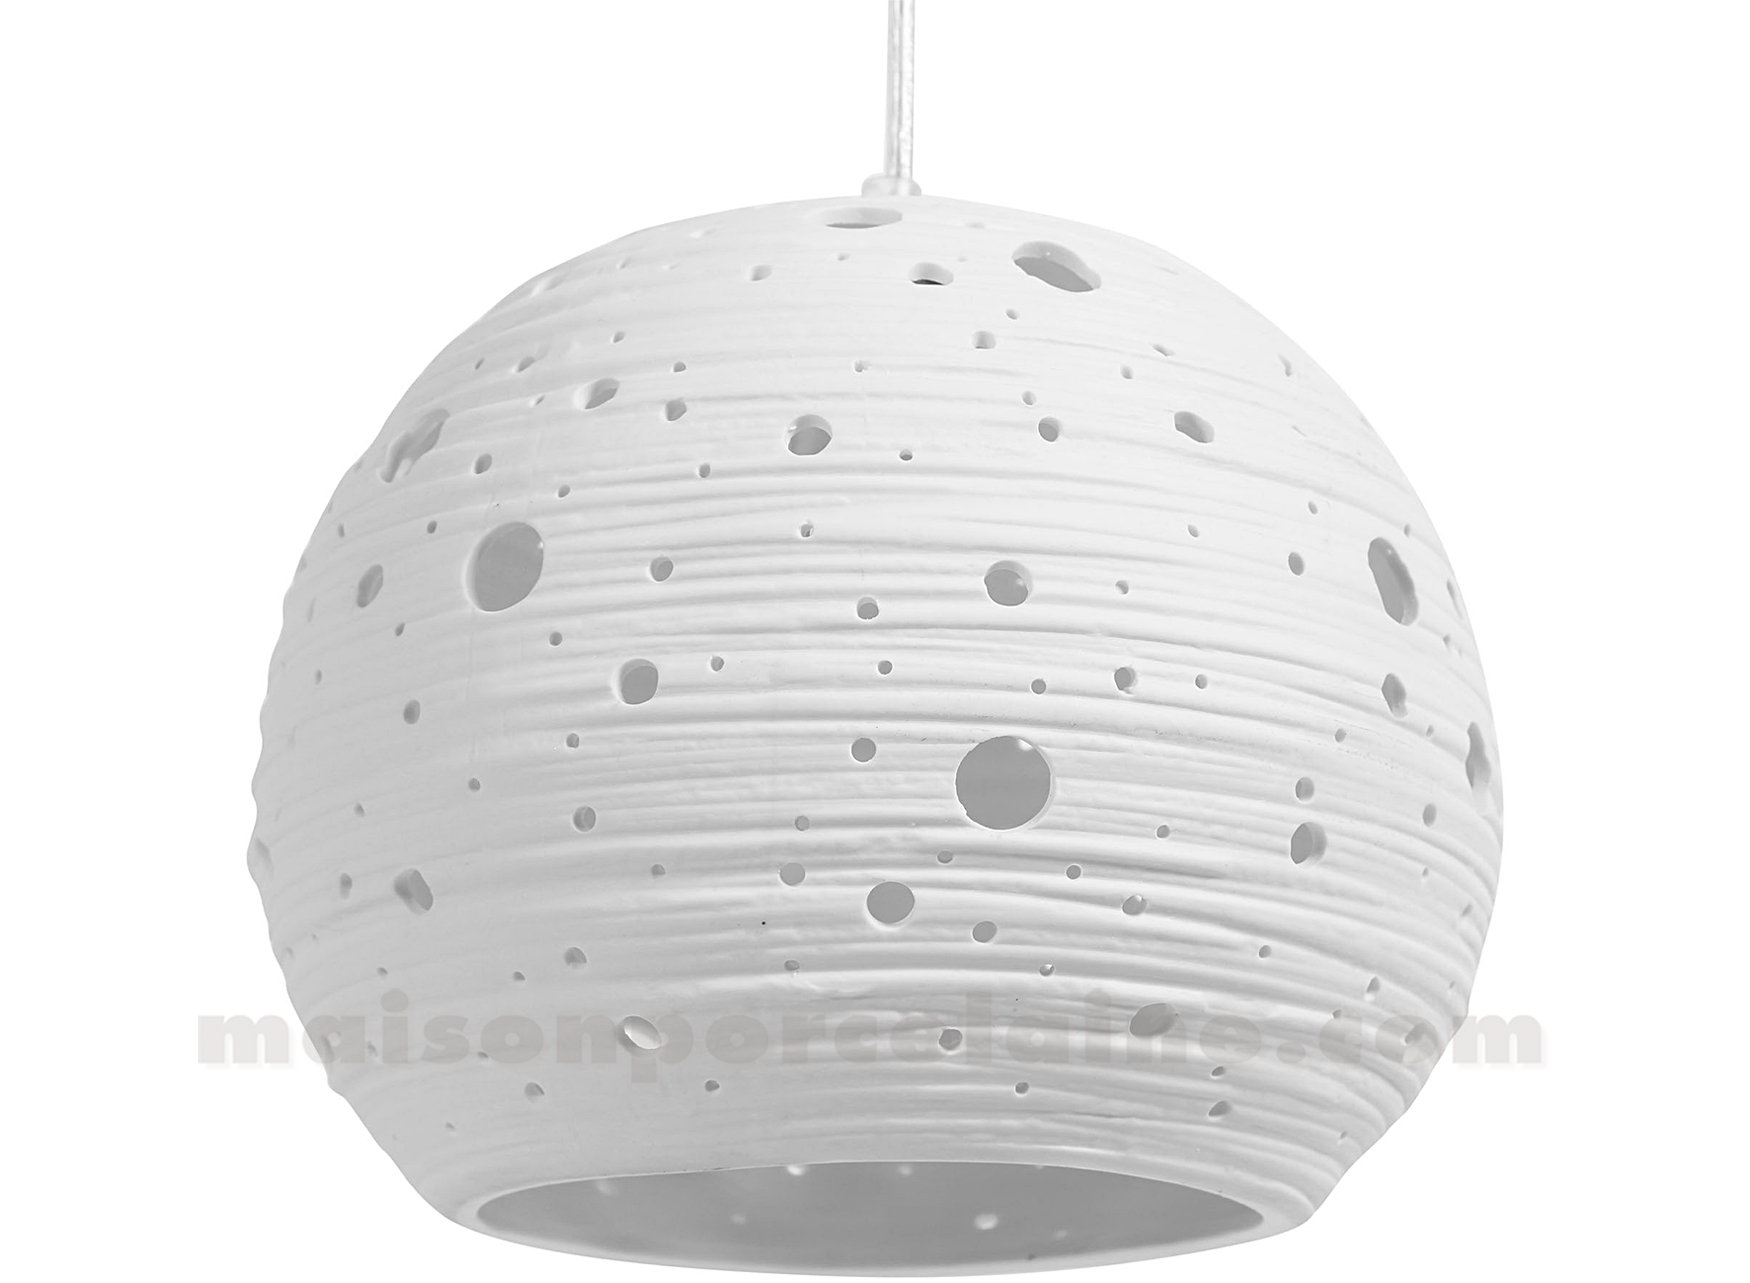 Lampe biscuit porcelaine suspension boule stries mm 21x17 5cm maison de la - Lampe suspension boule ...